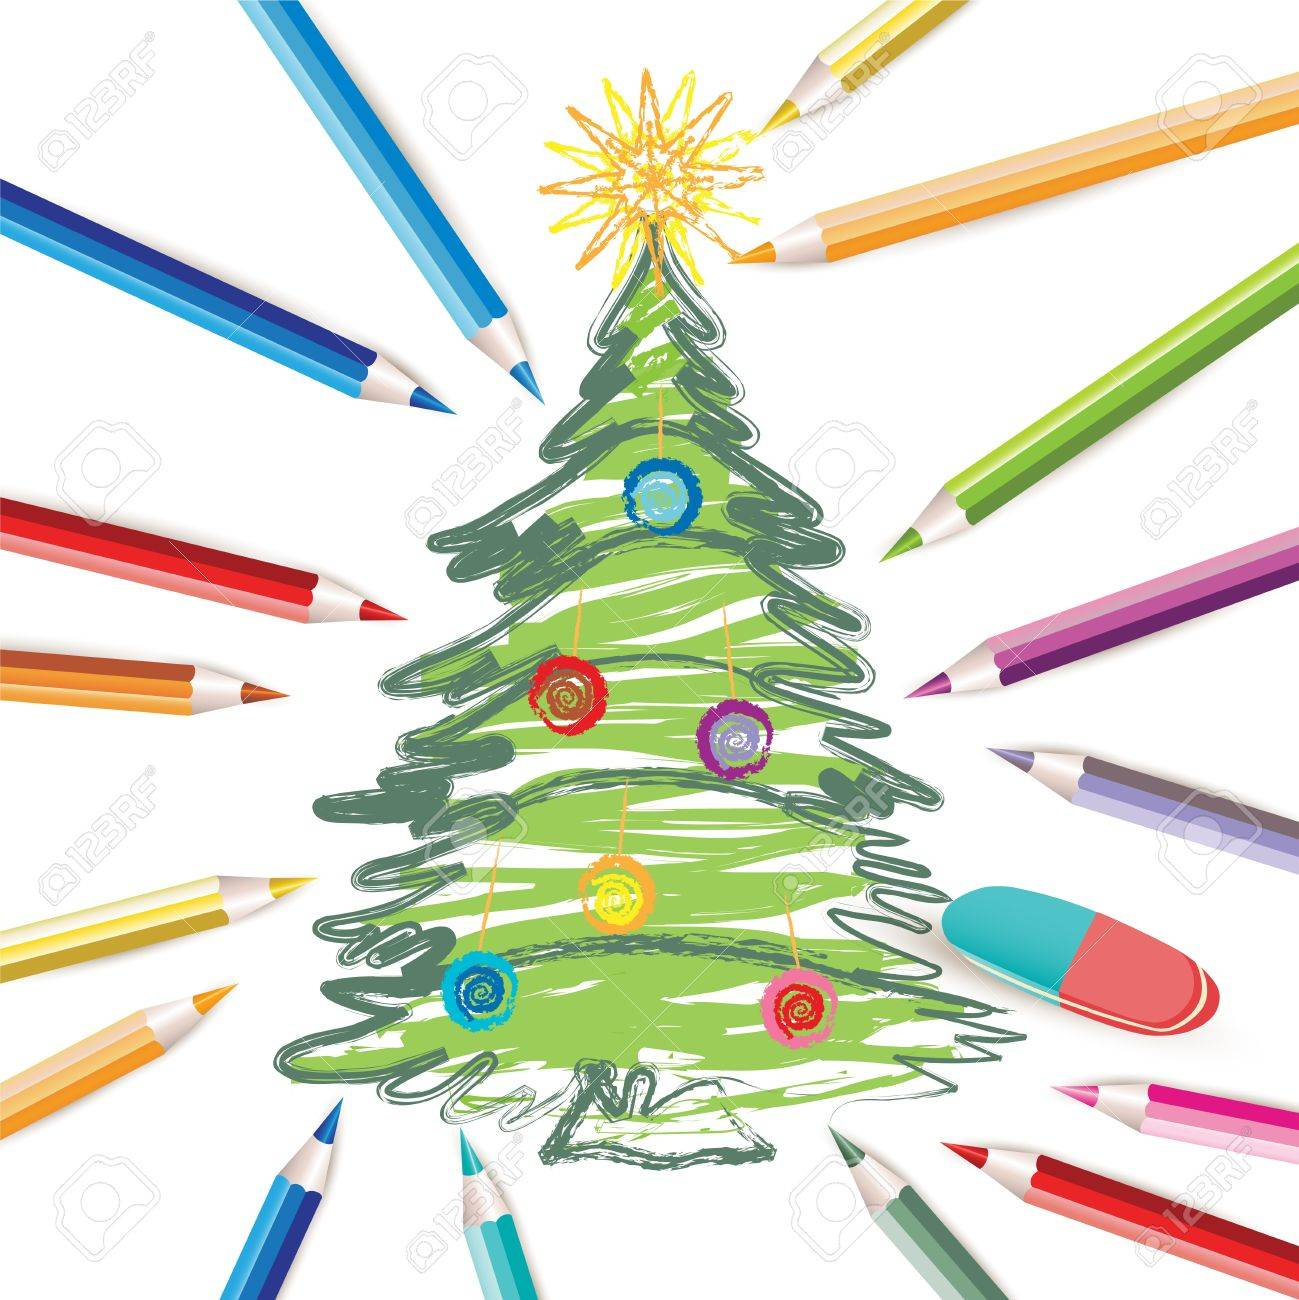 Christmas Tree With Colored Pencils And Eraser Royalty Free Cliparts ...